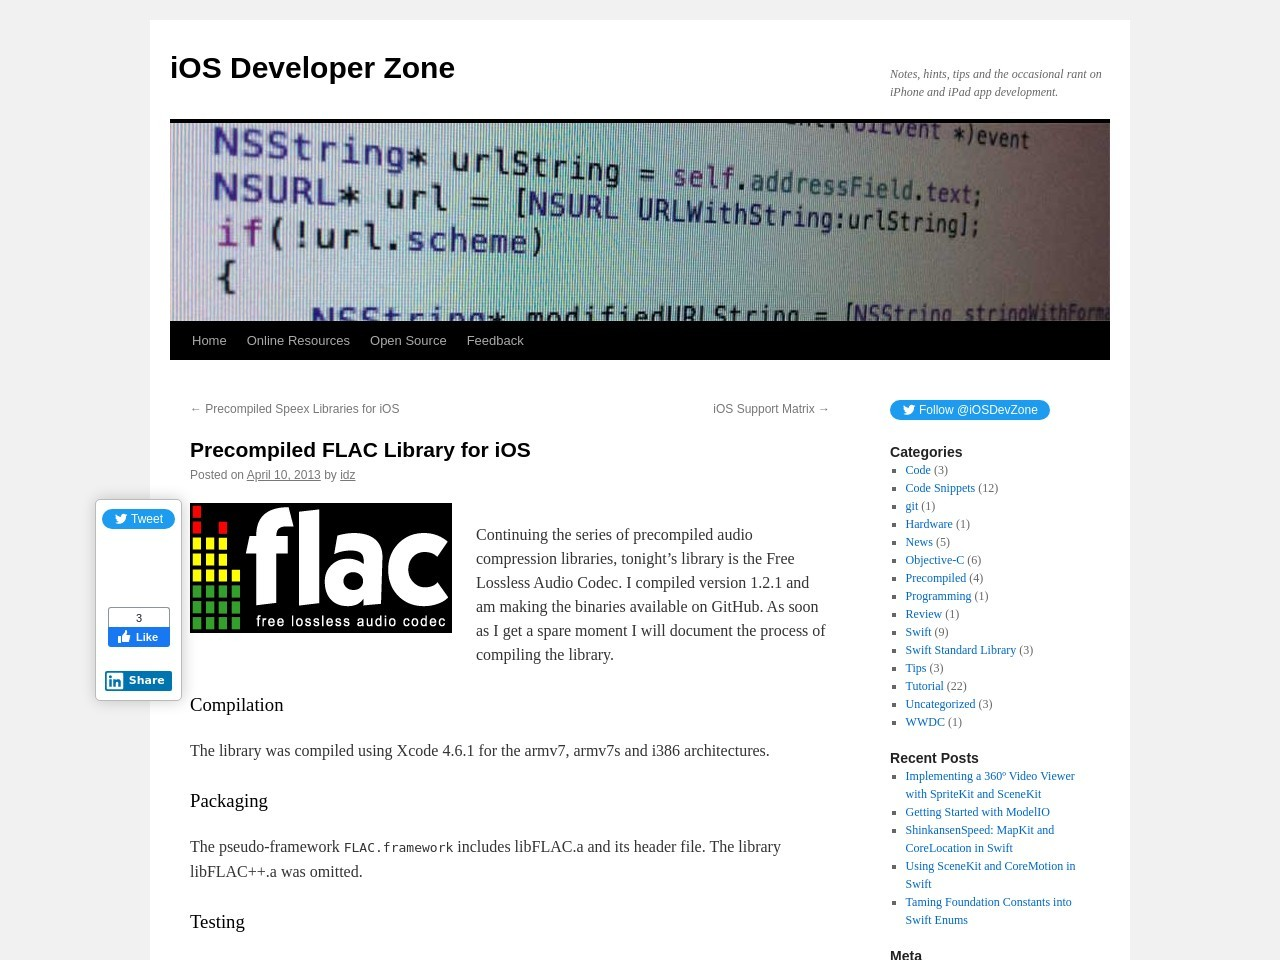 Precompiled FLAC Library for iOS | iOS Developer Zone